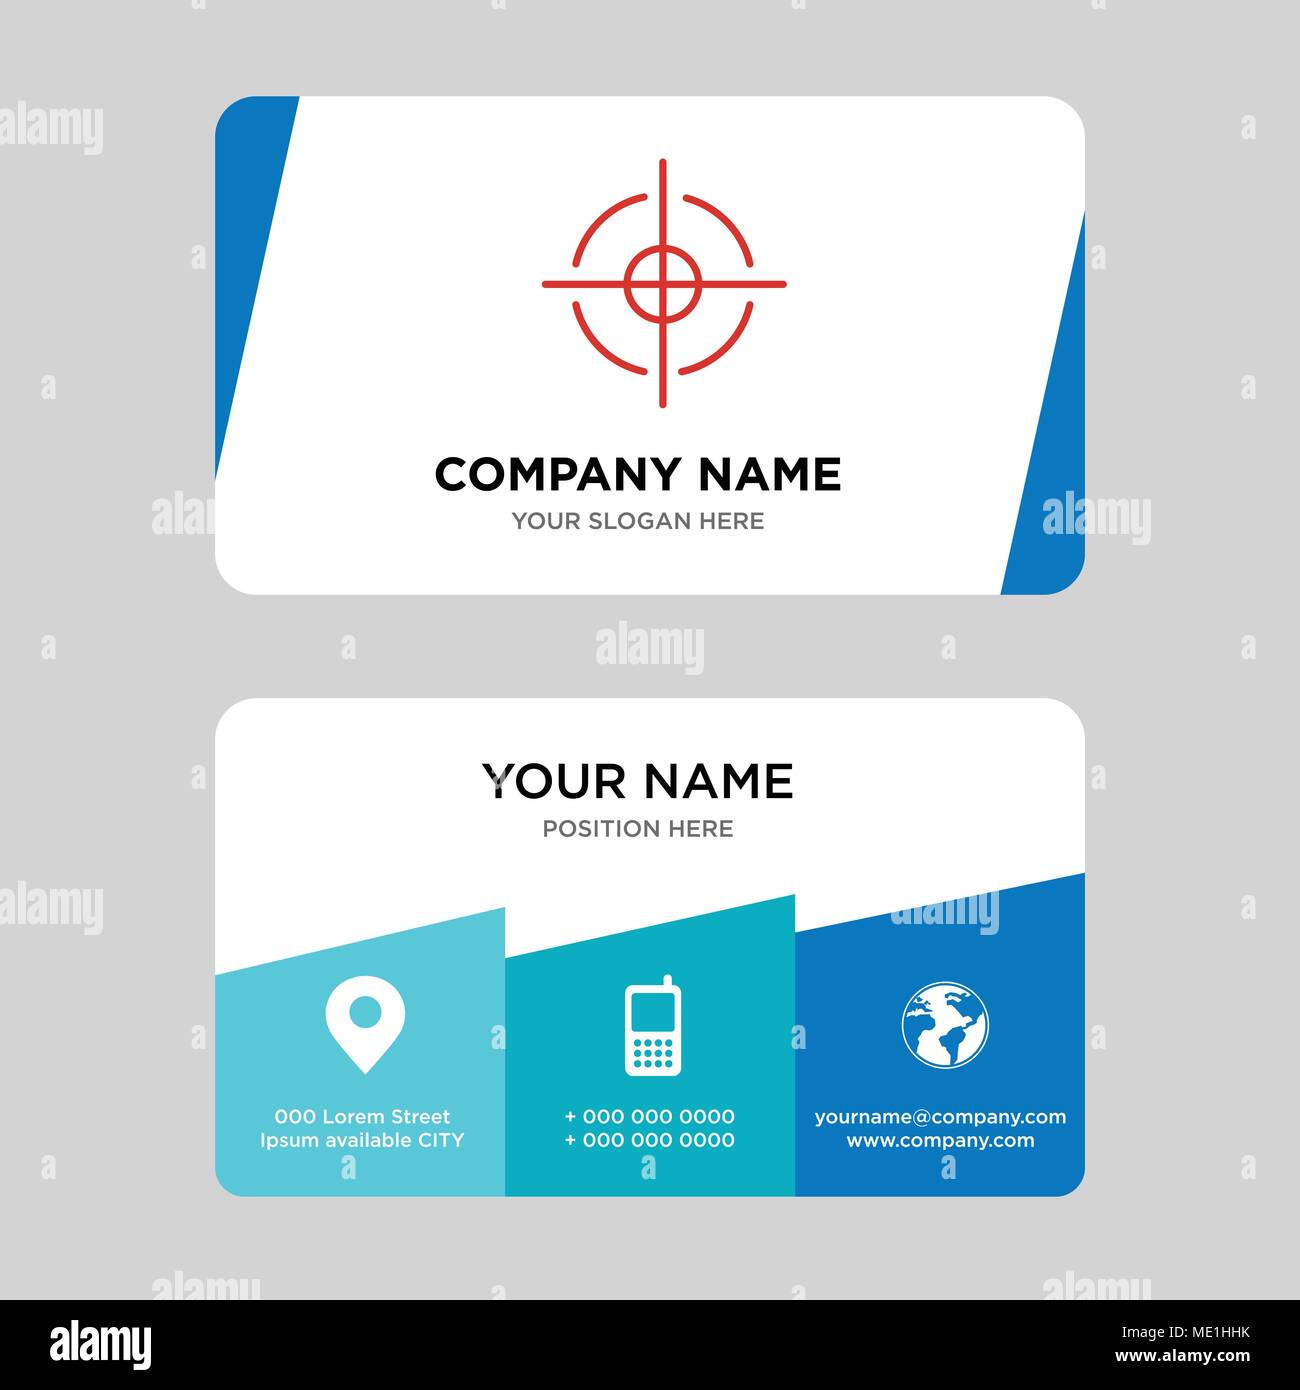 3d data analytics business card design template visiting for your 3d data analytics business card design template visiting for your company modern creative and clean identity card vector illustration cheaphphosting